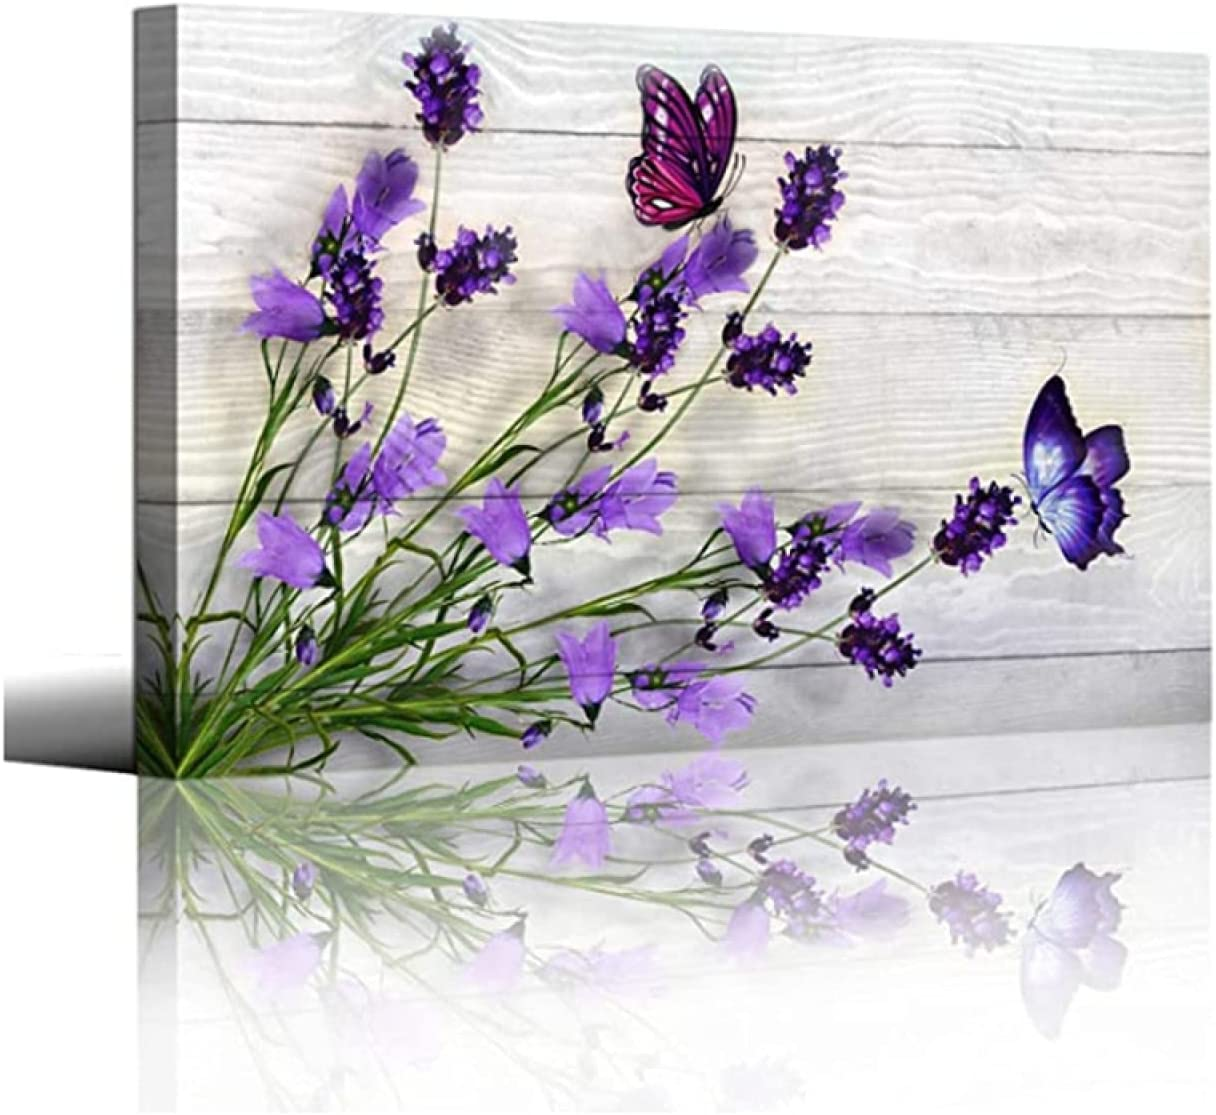 Flowers Canvas Wall Art Picture Prints for Bedroom Wall Decor Flowers are on Wooden Background Wall Art Decoration Artwork